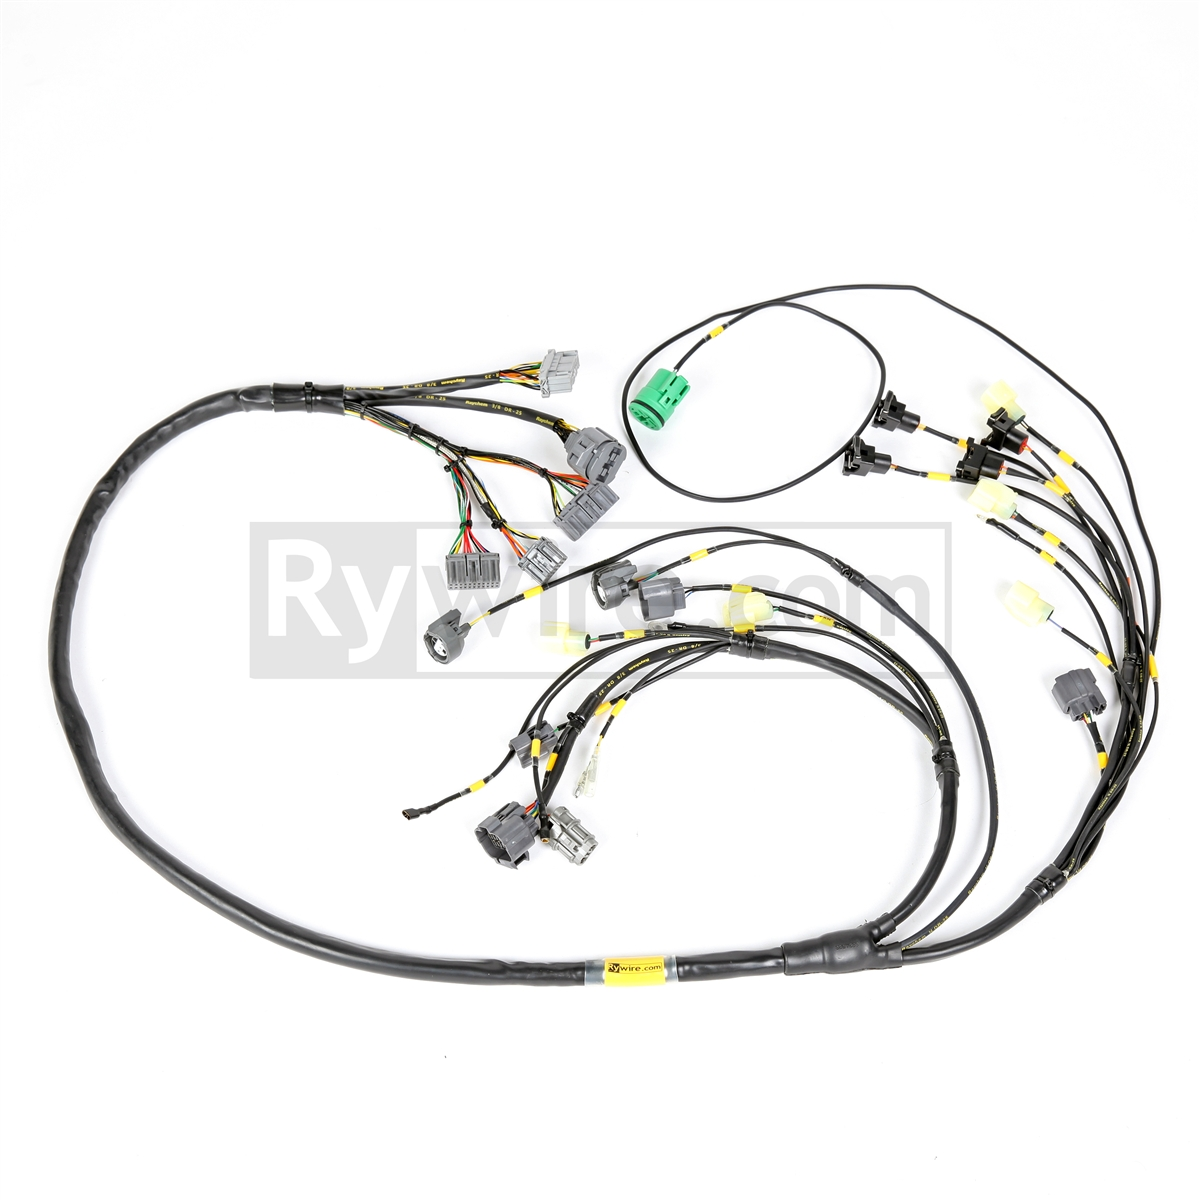 rywire com mil spec f series (f20b) & h series (h22) harness Mil Spec Wire Harness rywire mil spec f series & h series harness mil spec wiring harness